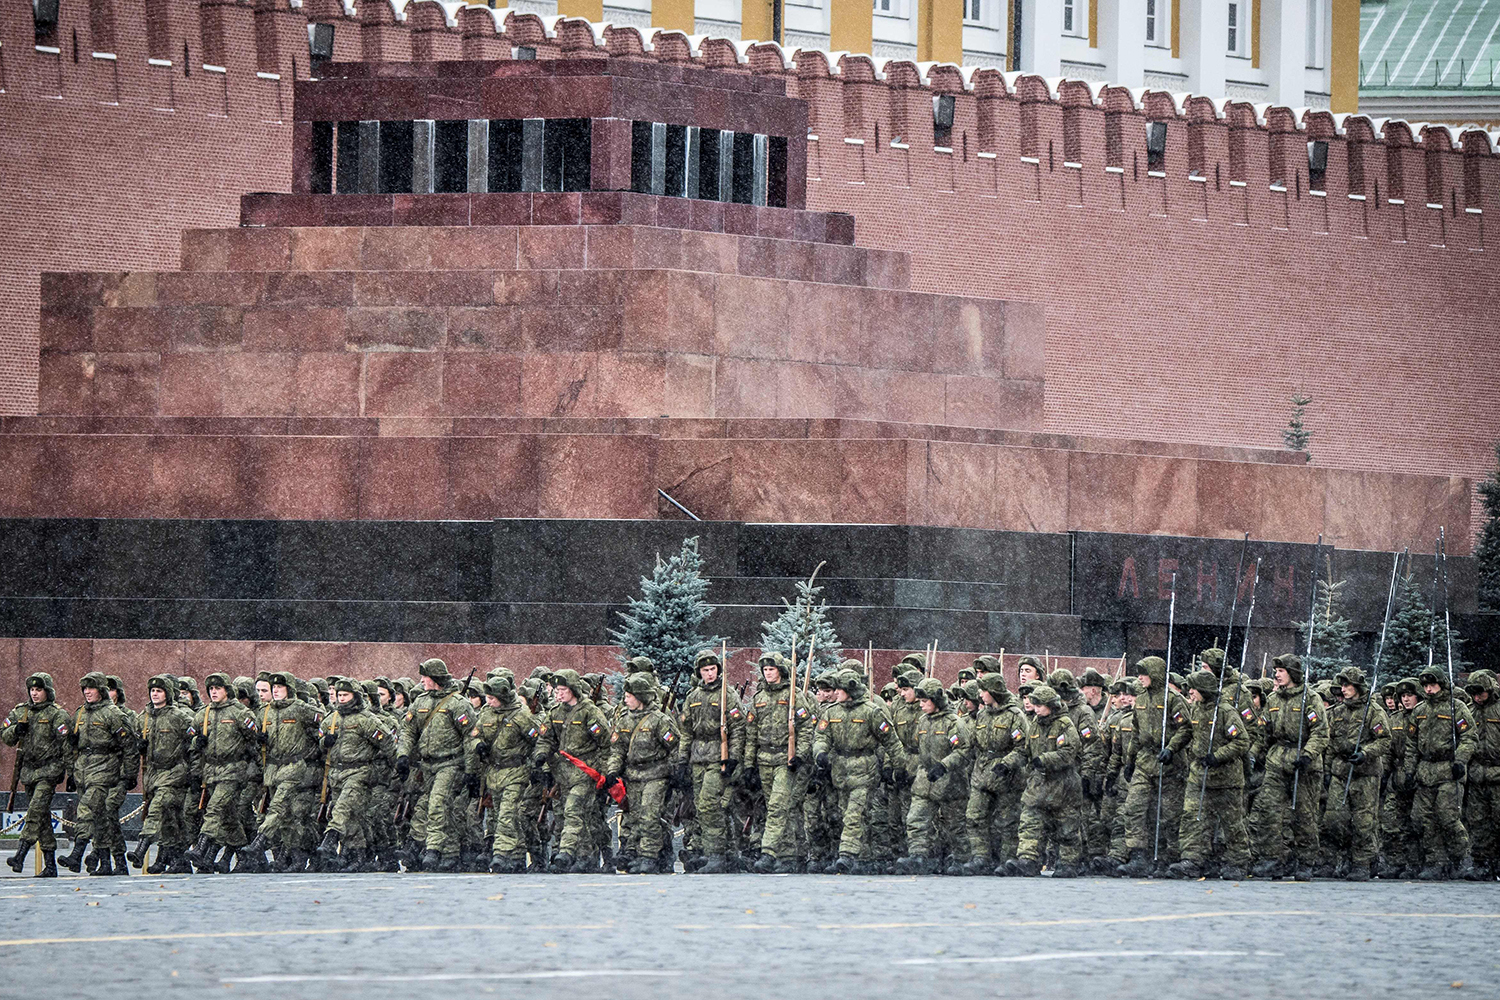 TOPSHOT - Russian soldiers rehearse for the upcoming parade on Red Square in Moscow on October 26, 2017. The event will take place on November 7, marking the 76th anniversary of the 1941 historical parade, when Red Army soldiers marched past the Kremlin walls towards the front line to fight the Nazi Germany troops during World War Two. / AFP PHOTO / Mladen ANTONOV        (Photo credit should read MLADEN ANTONOV/AFP/Getty Images)